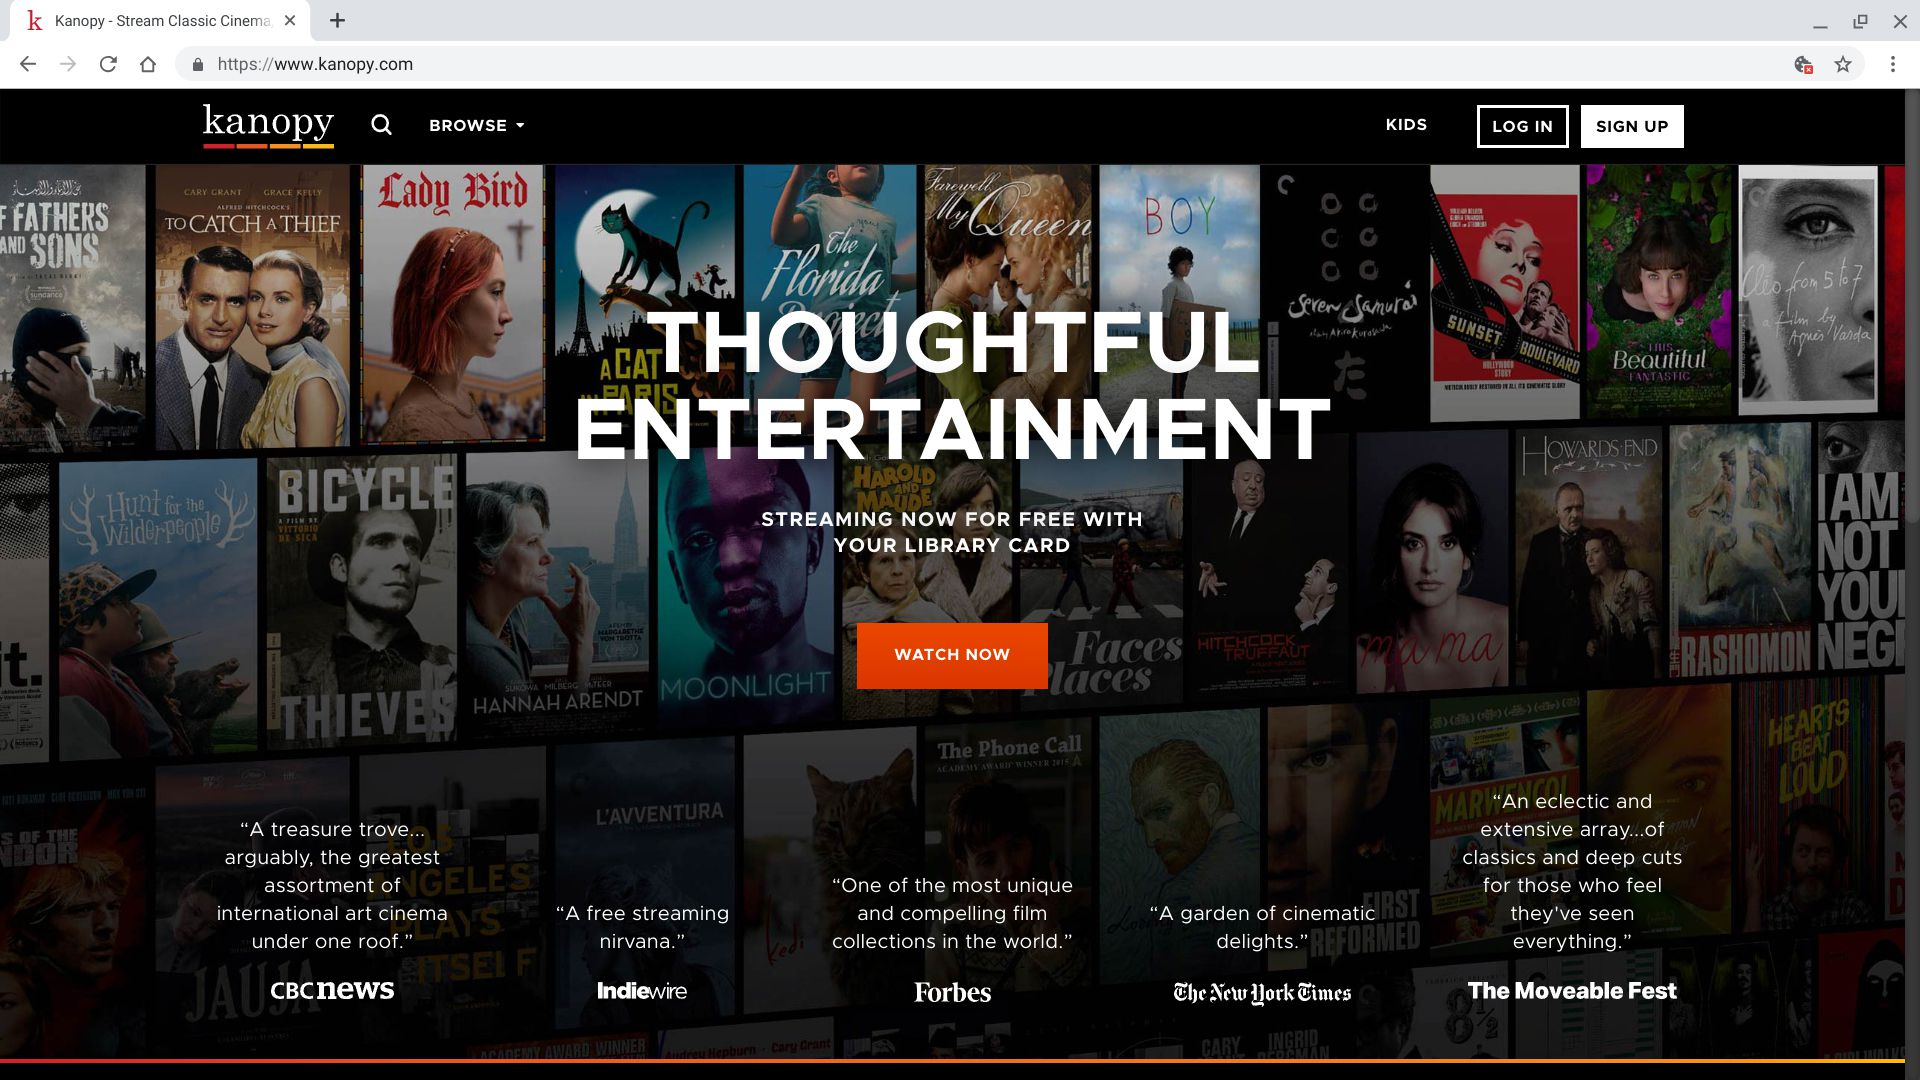 What Is the Kanopy Streaming Service?